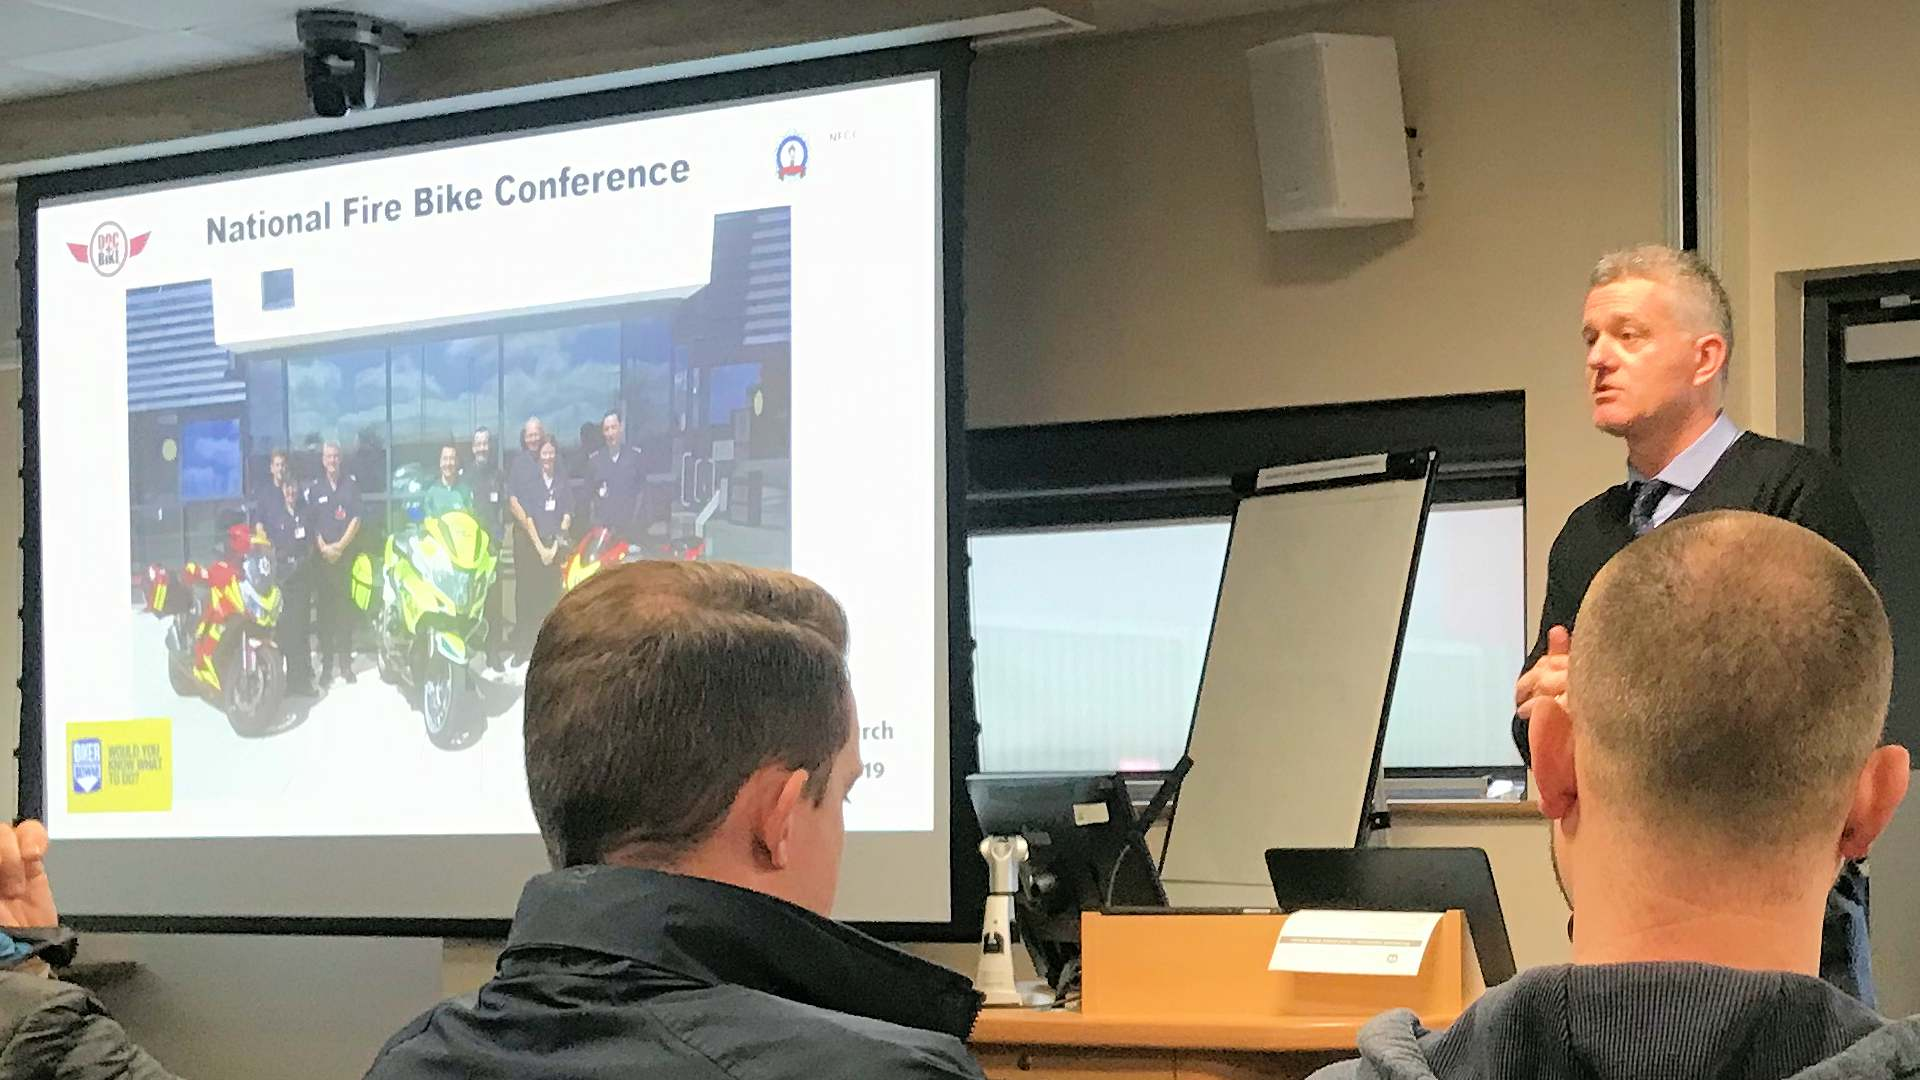 West Midlands National FireBike Conference March 2019